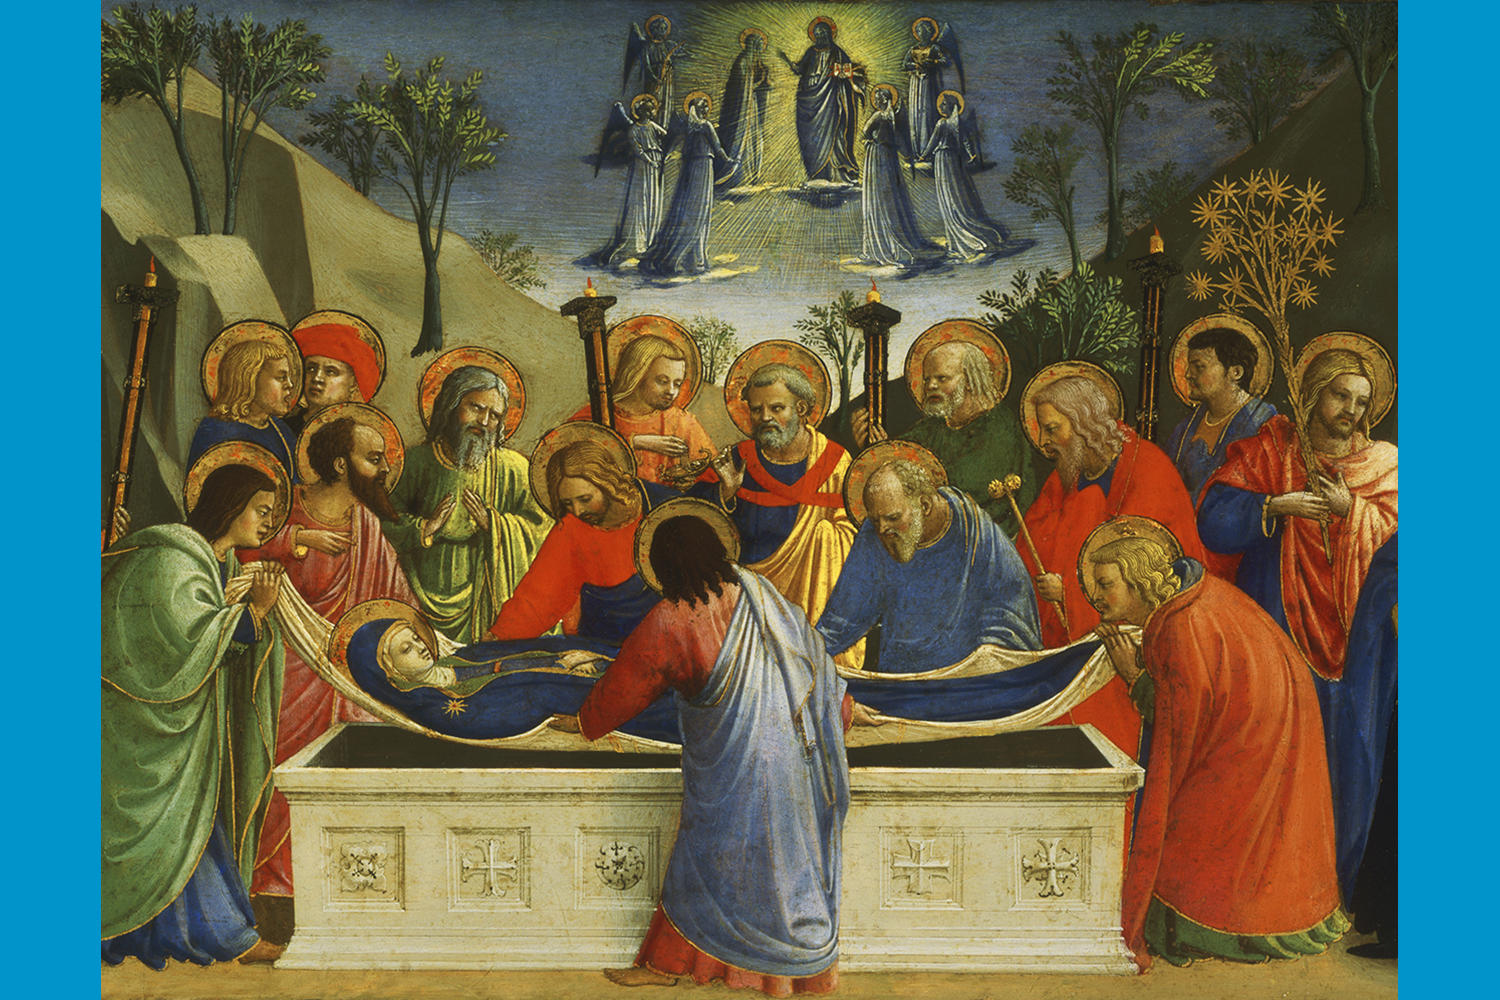 Fra Angelico (Italian, about 1400 - 1455), The Dormition of the Virgin, about 1425. Tempera, silver and tooled gold on panel, 26.2 x 52.2 cm (10 5/16 x 20 9/16 in.) Philadelphia Museum of Art. Photo: Philadelphia Museum of Art / Art Resource, NY